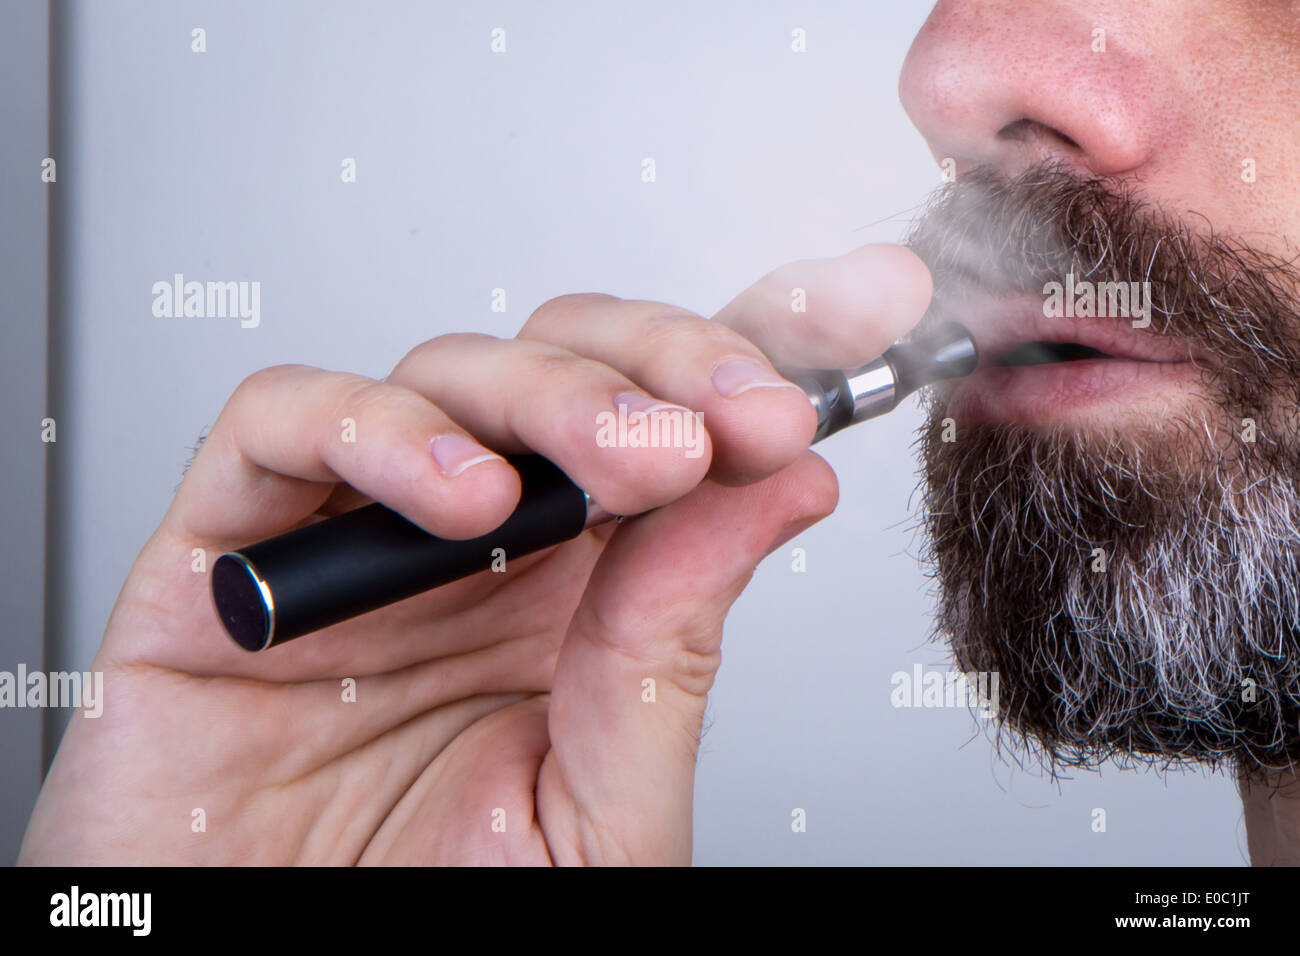 Bearded man using a vaporiser (with vapor) - Stock Image